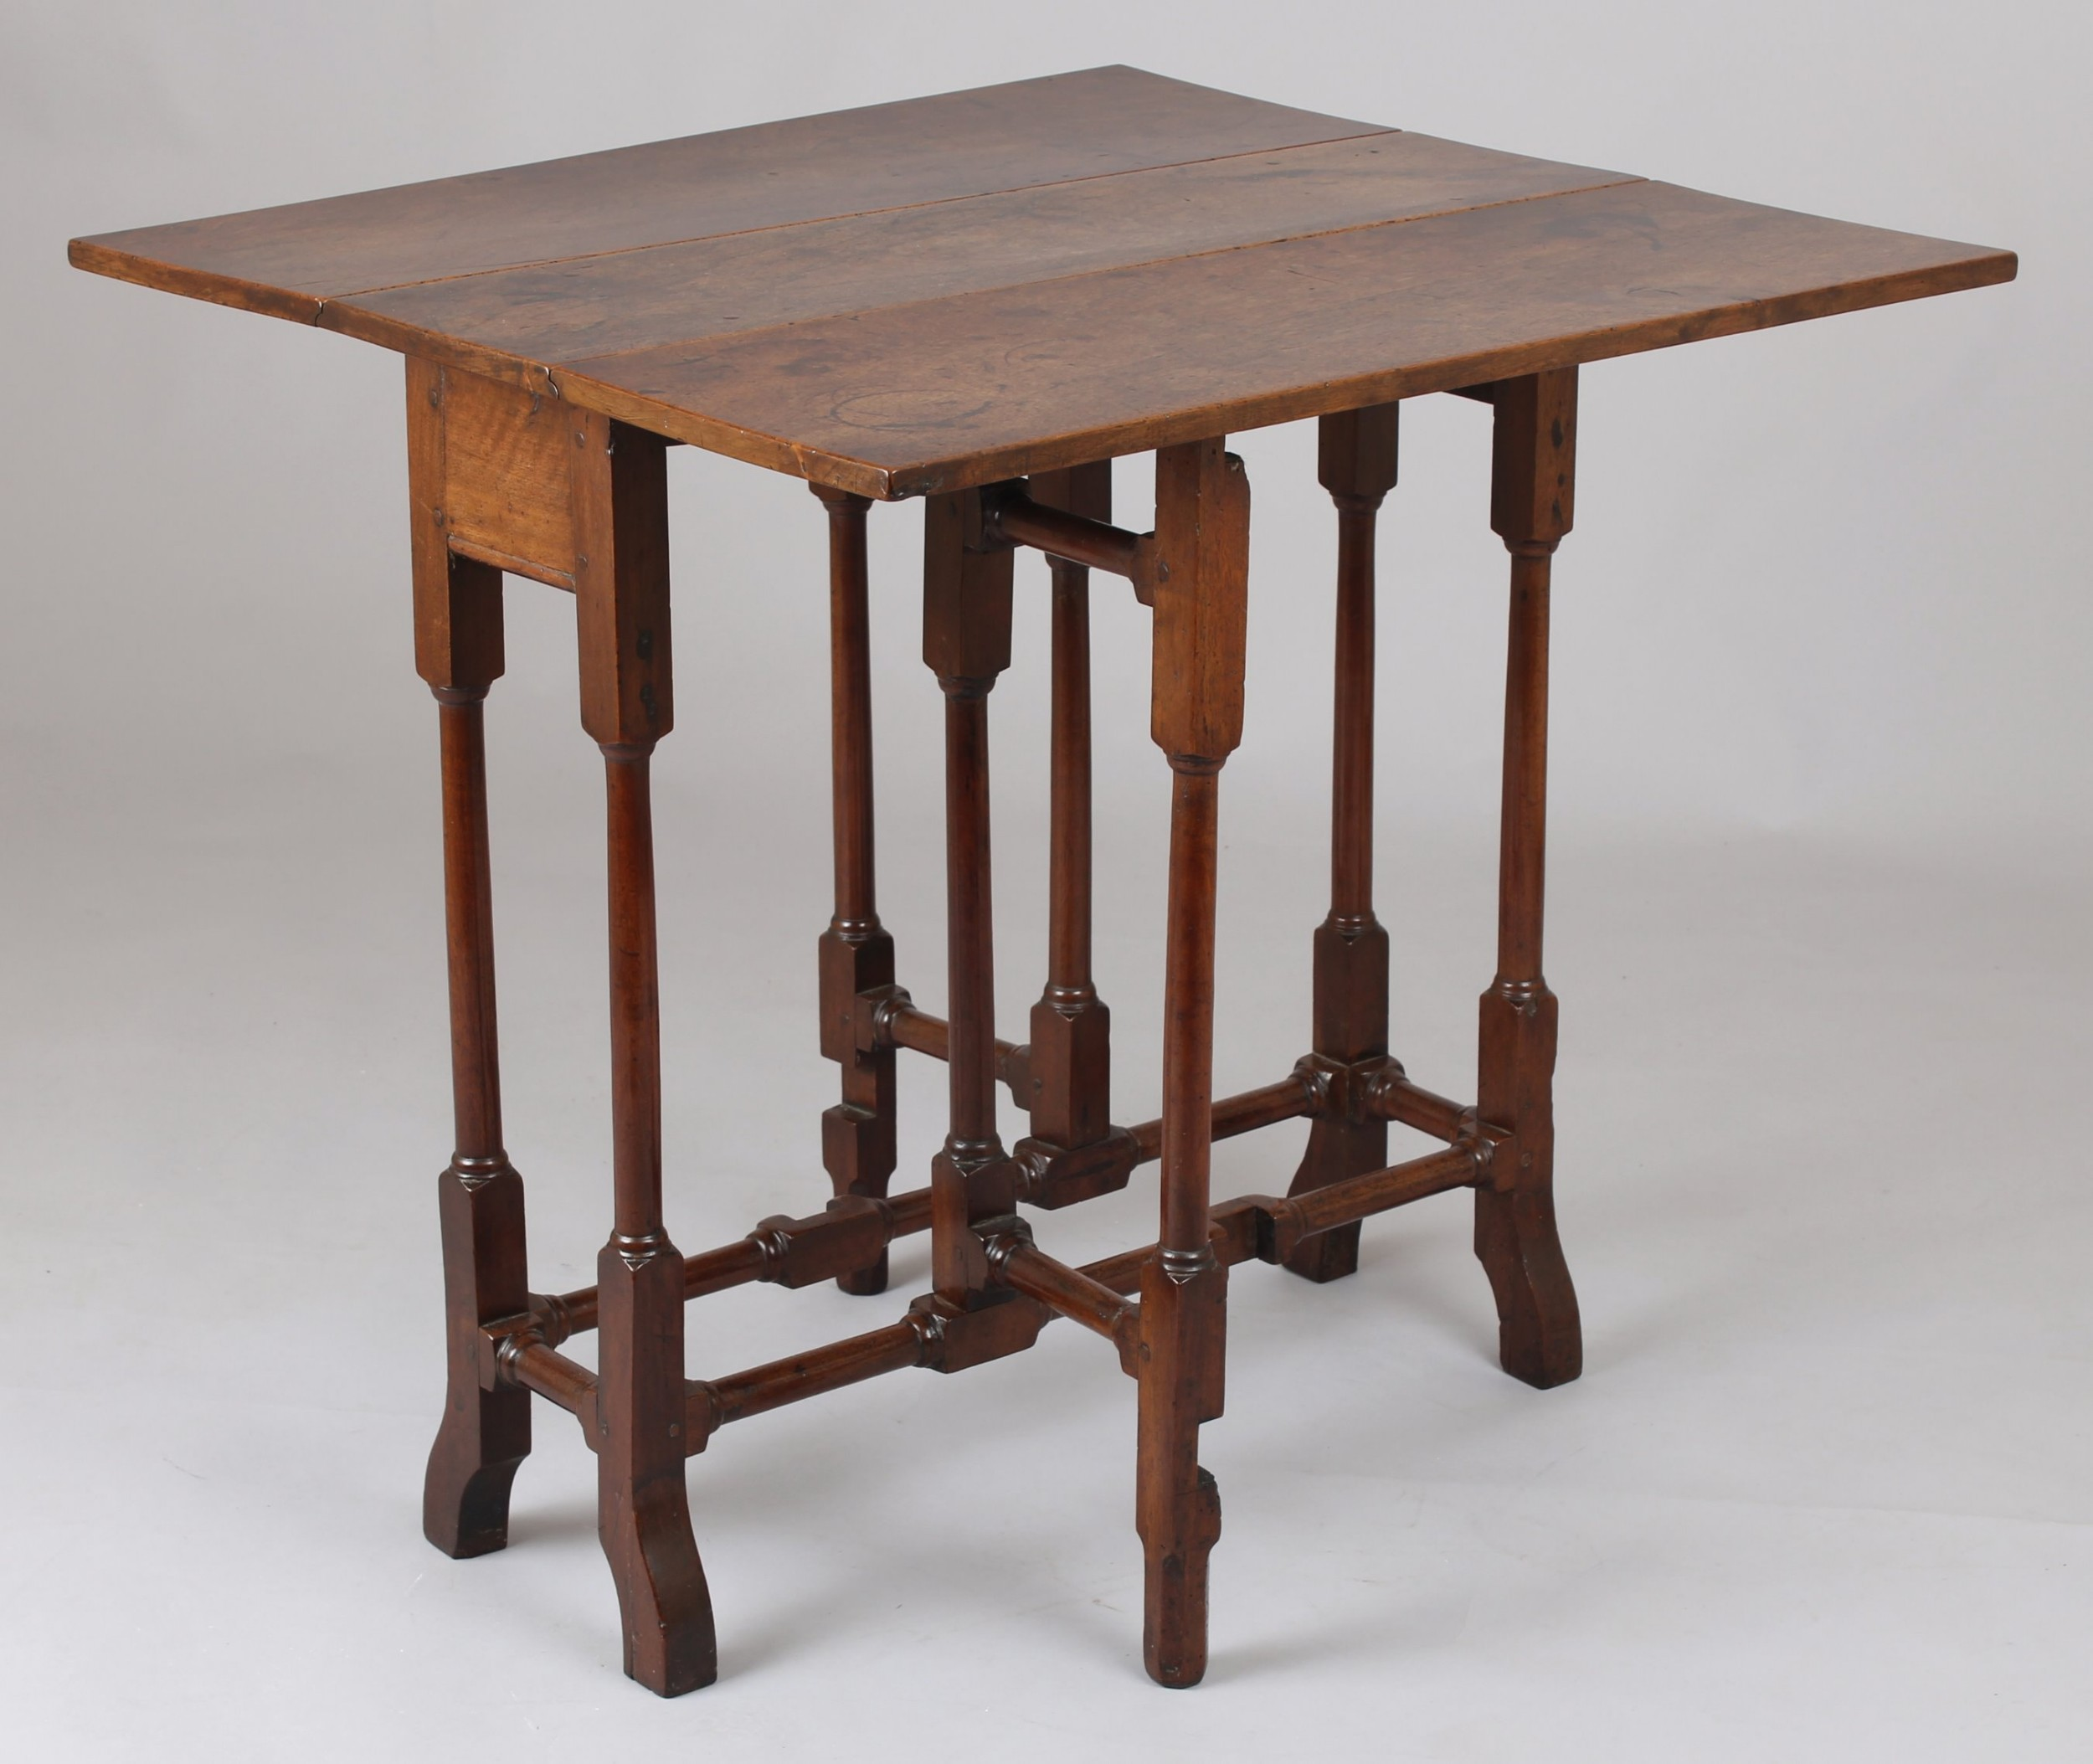 george ii period walnut dropleaf table of unusually small size